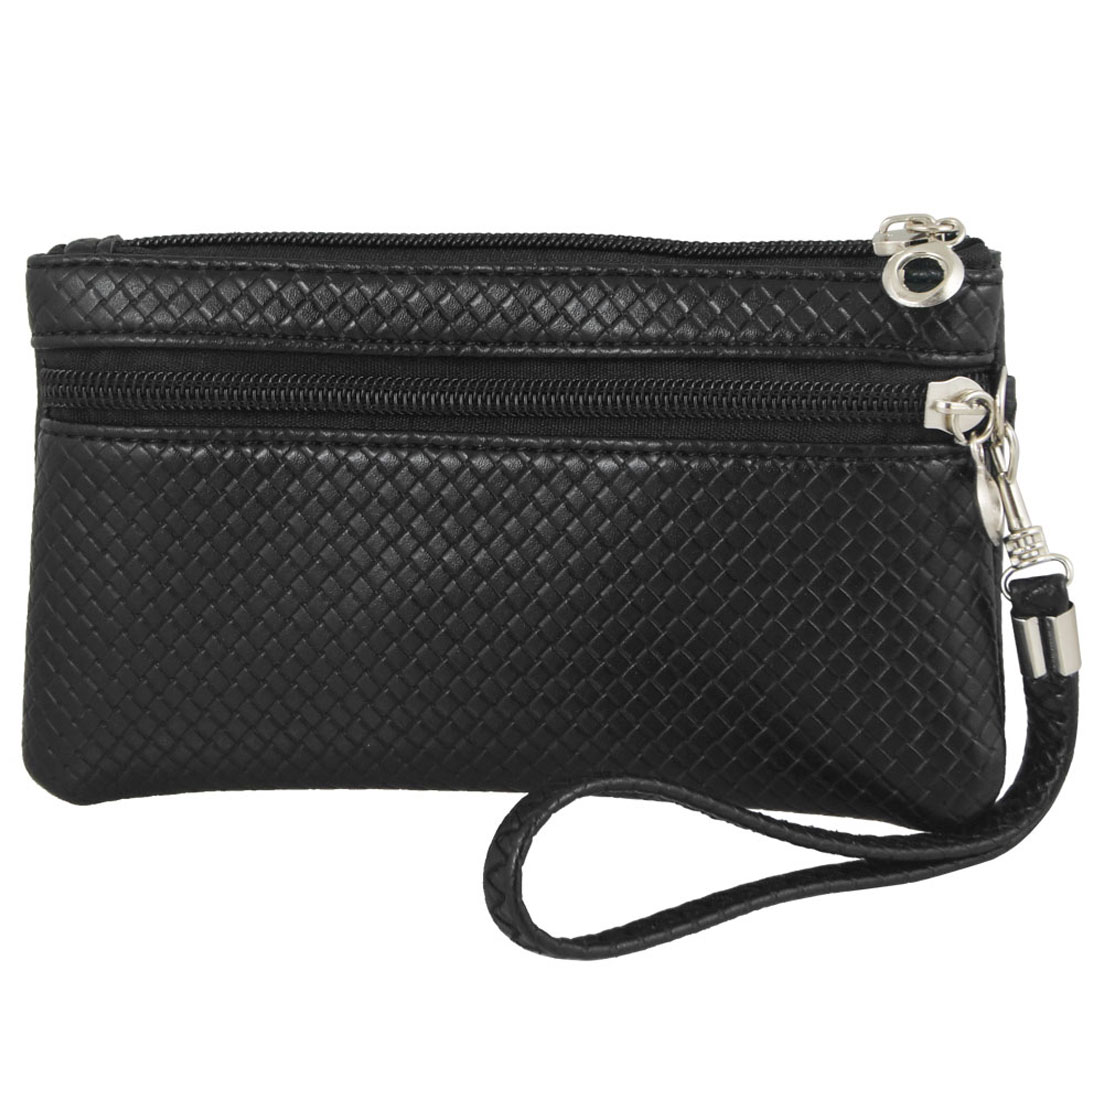 Zipper Closure Nylon Lining Faux Leather Weave Pattern Wallet Purse Black